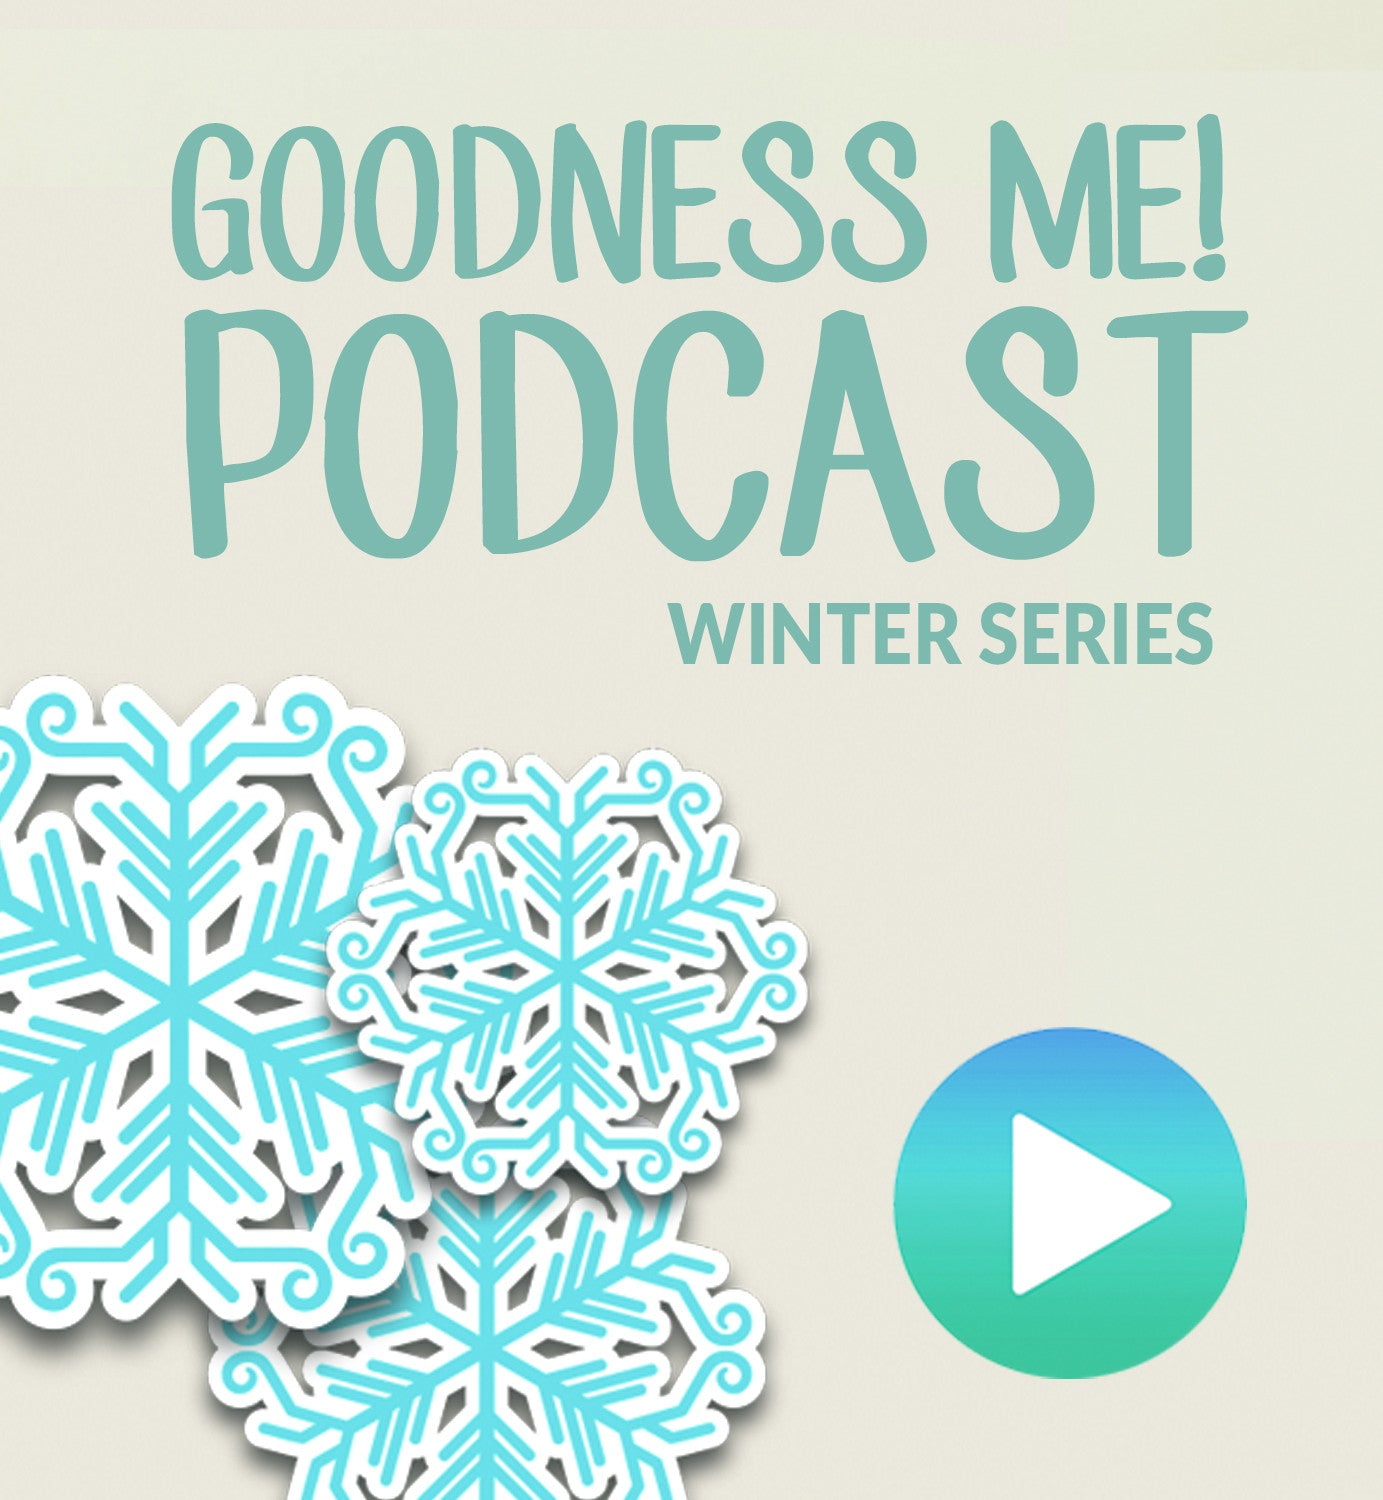 Jan 14 Goodness Me! Podcast--Part 1: The Detox Puzzle